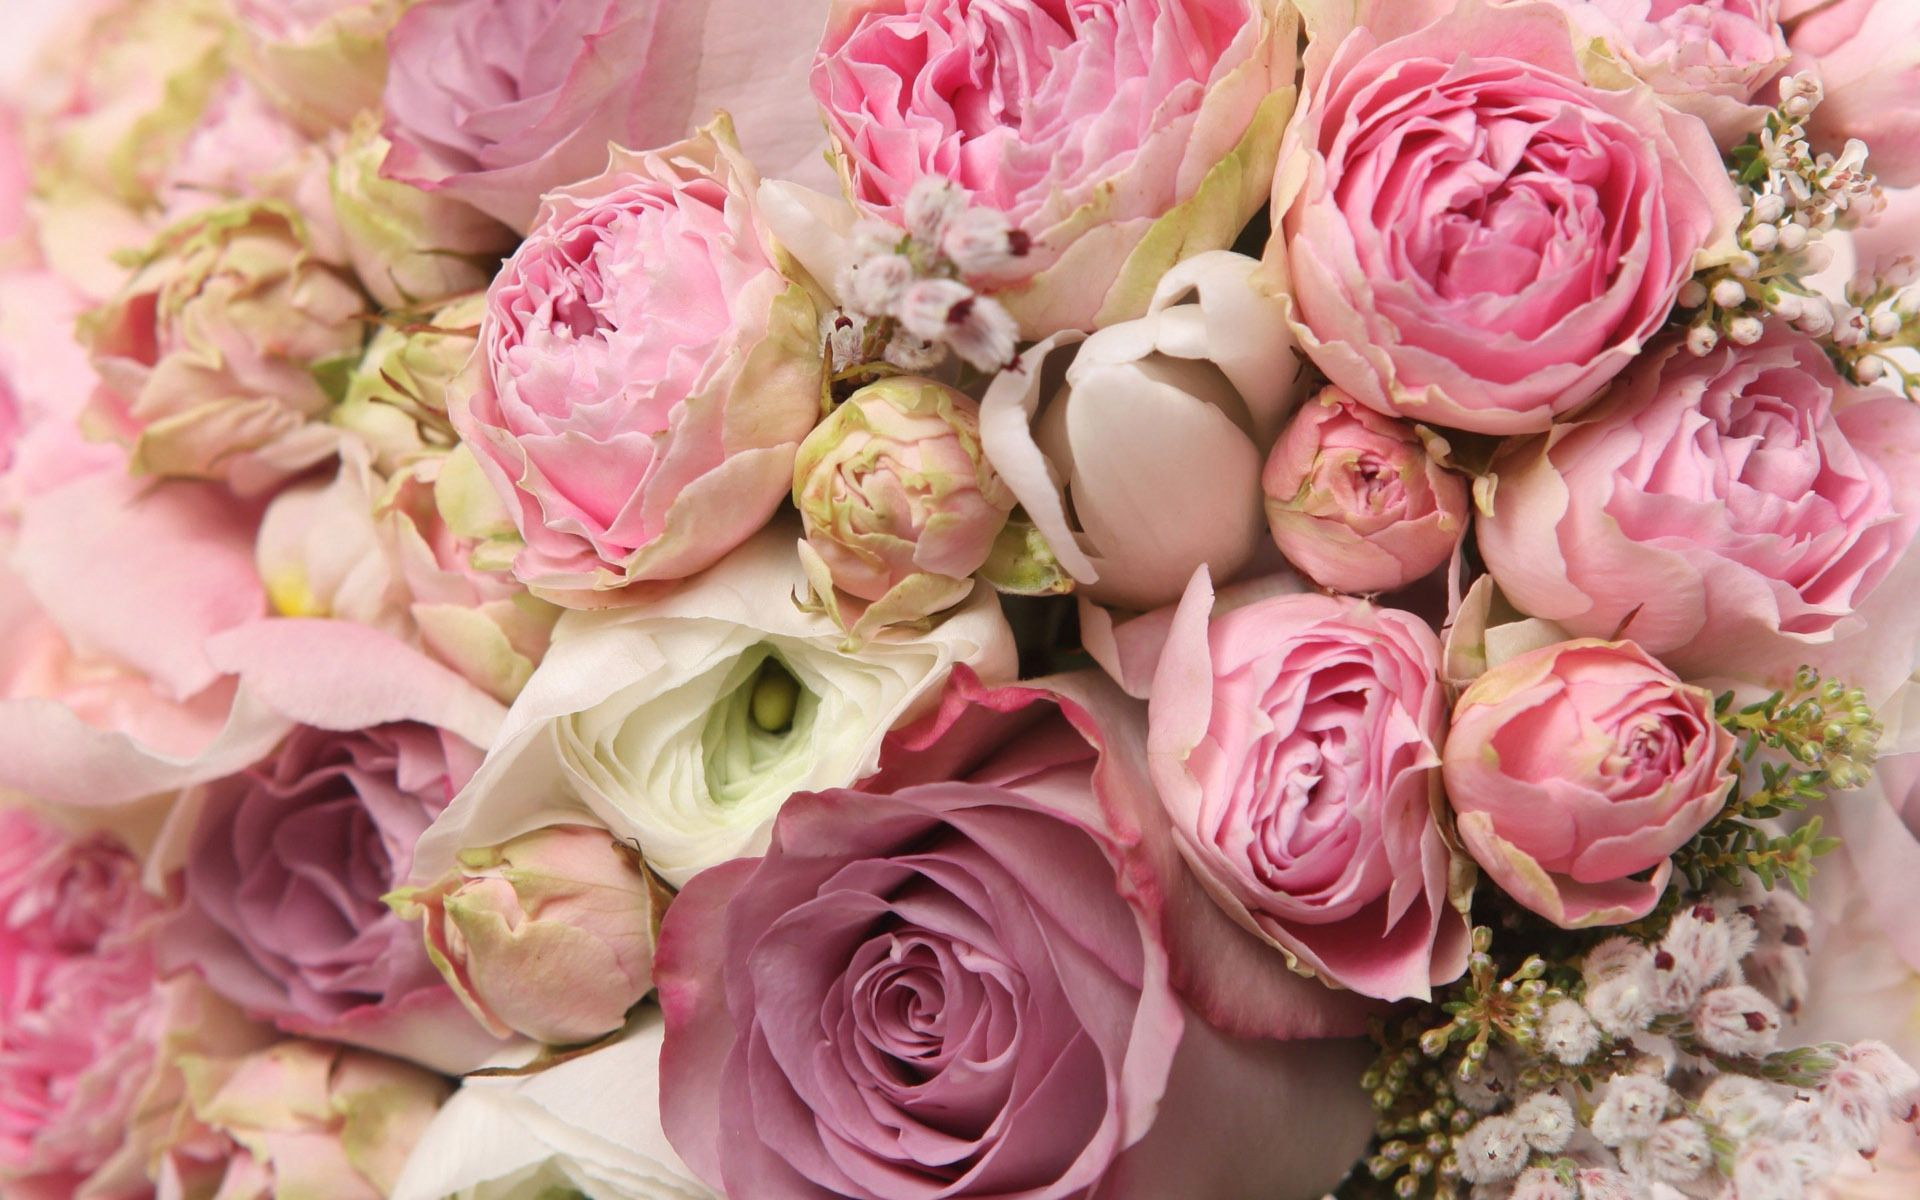 Roses And Peonies Bouquet Wallpaper Peony Wallpaper Pink Peonies Wallpaper Romantic Flowers Roses